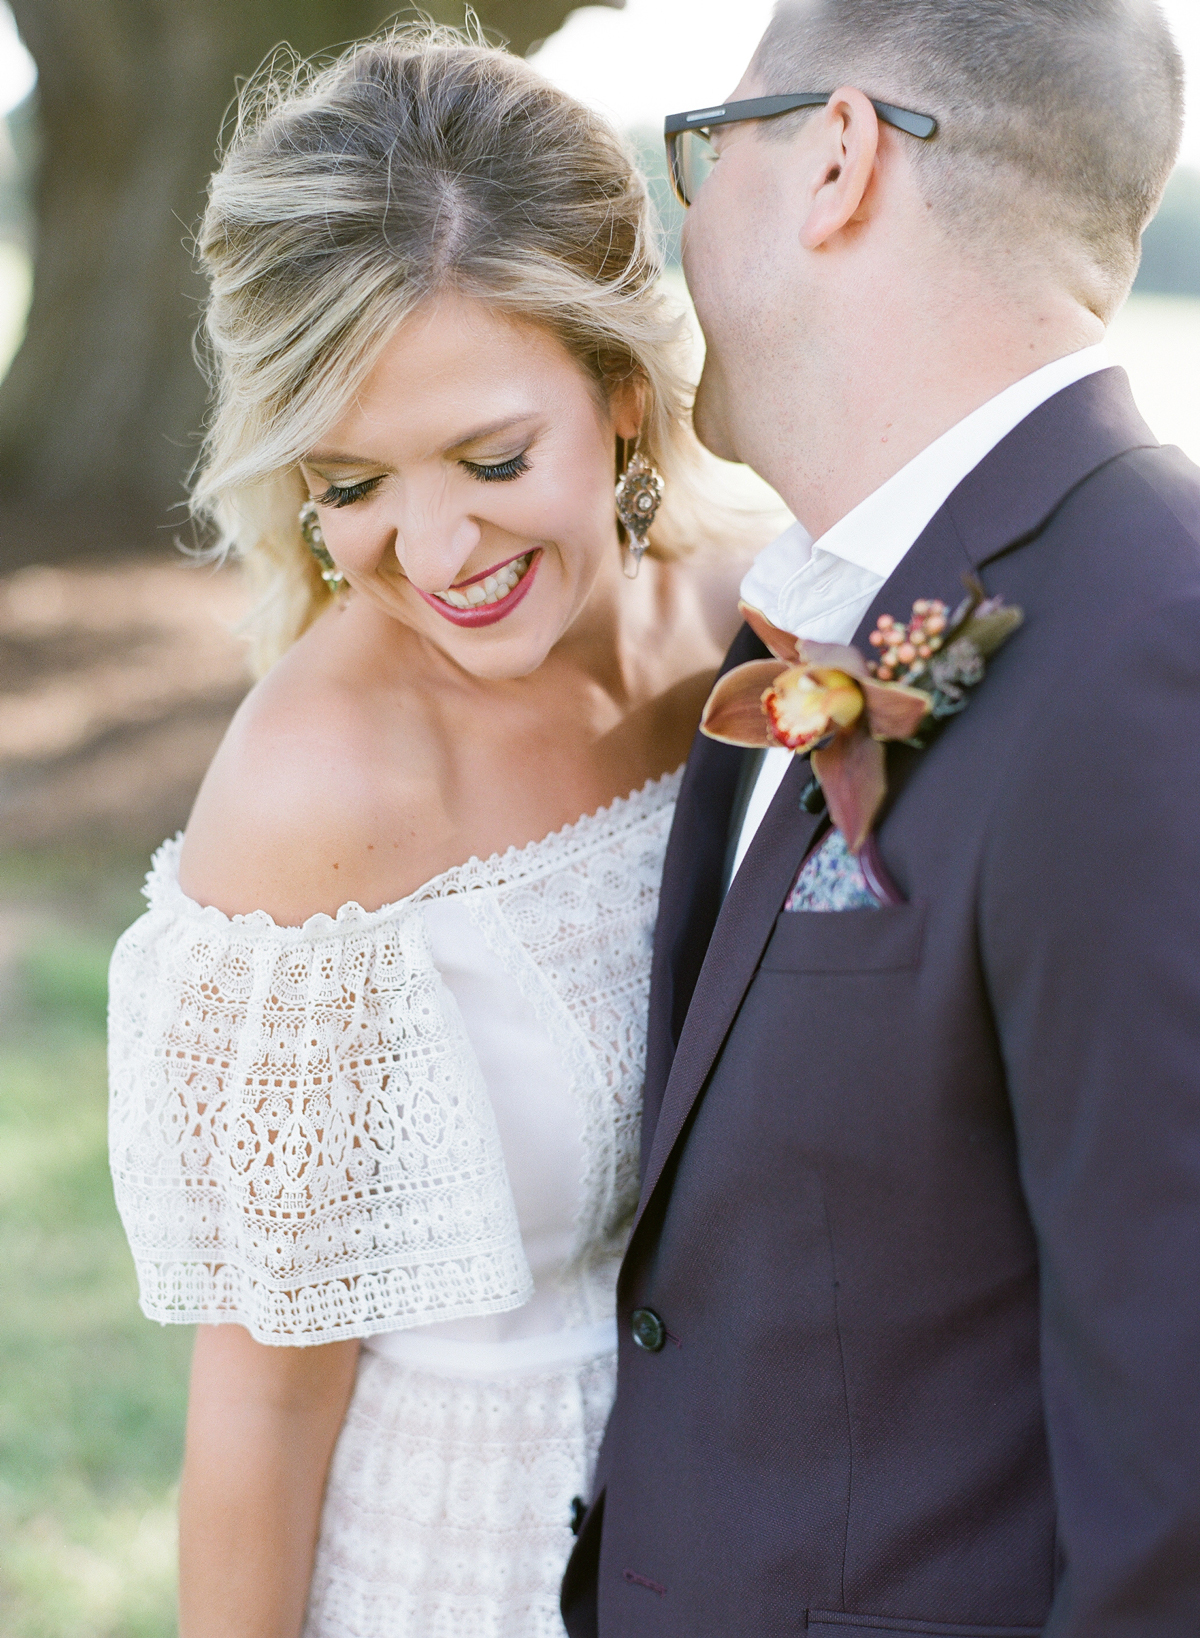 Couple poses smiling for vow renewal